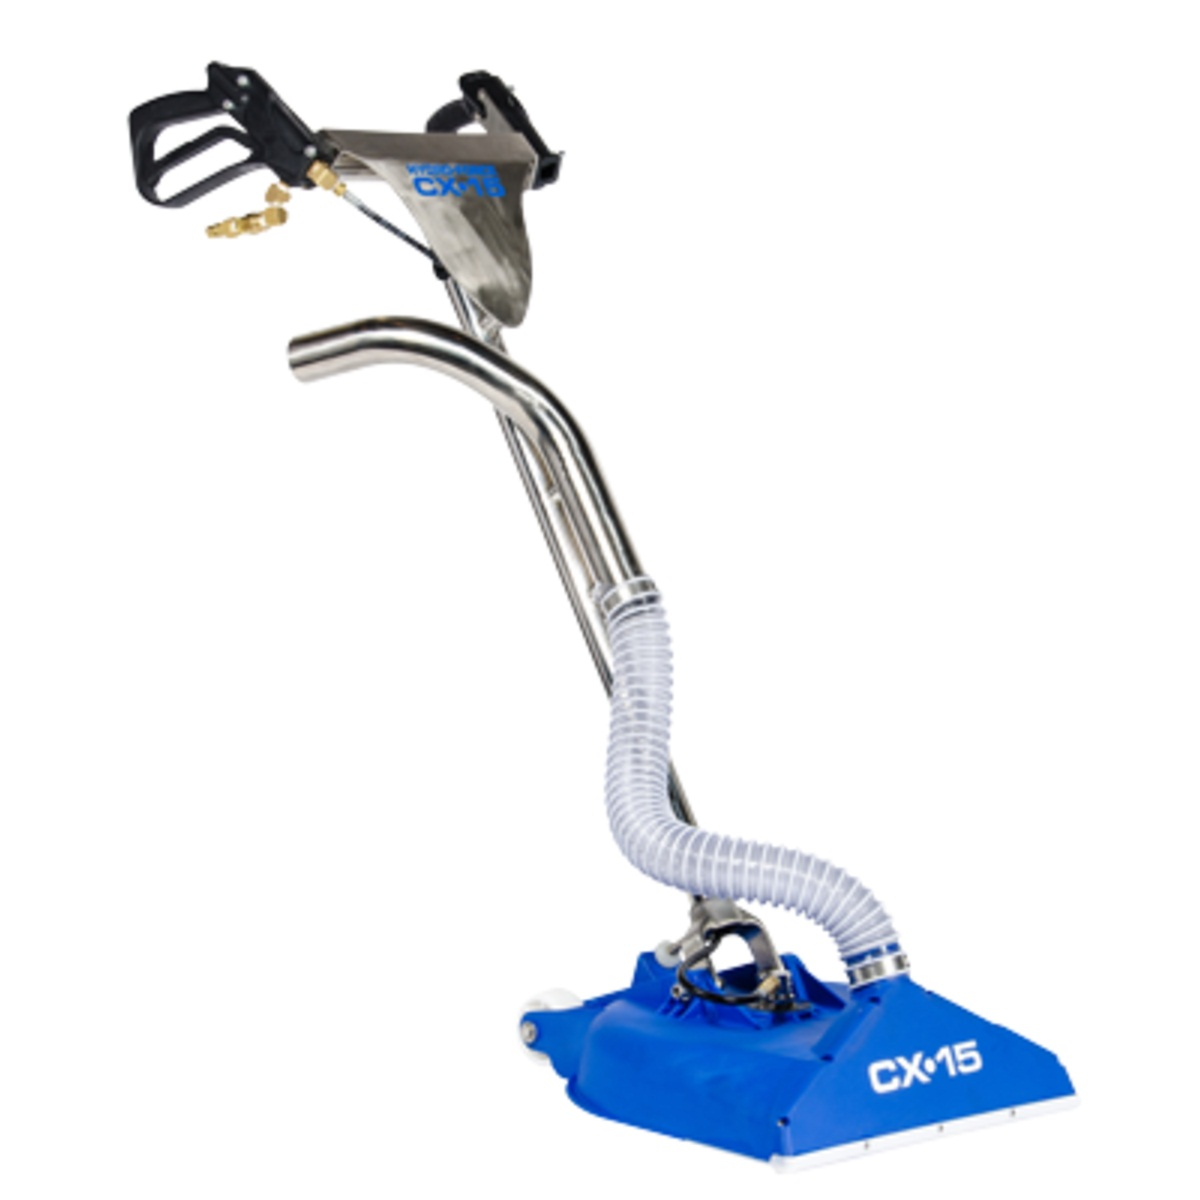 HydroForce CX-15 inch Soft Surface Cleaning Tool AW115 Spinner Carpet Cleaning Wand CX15  1608-2048 Freight Included 0768724760807